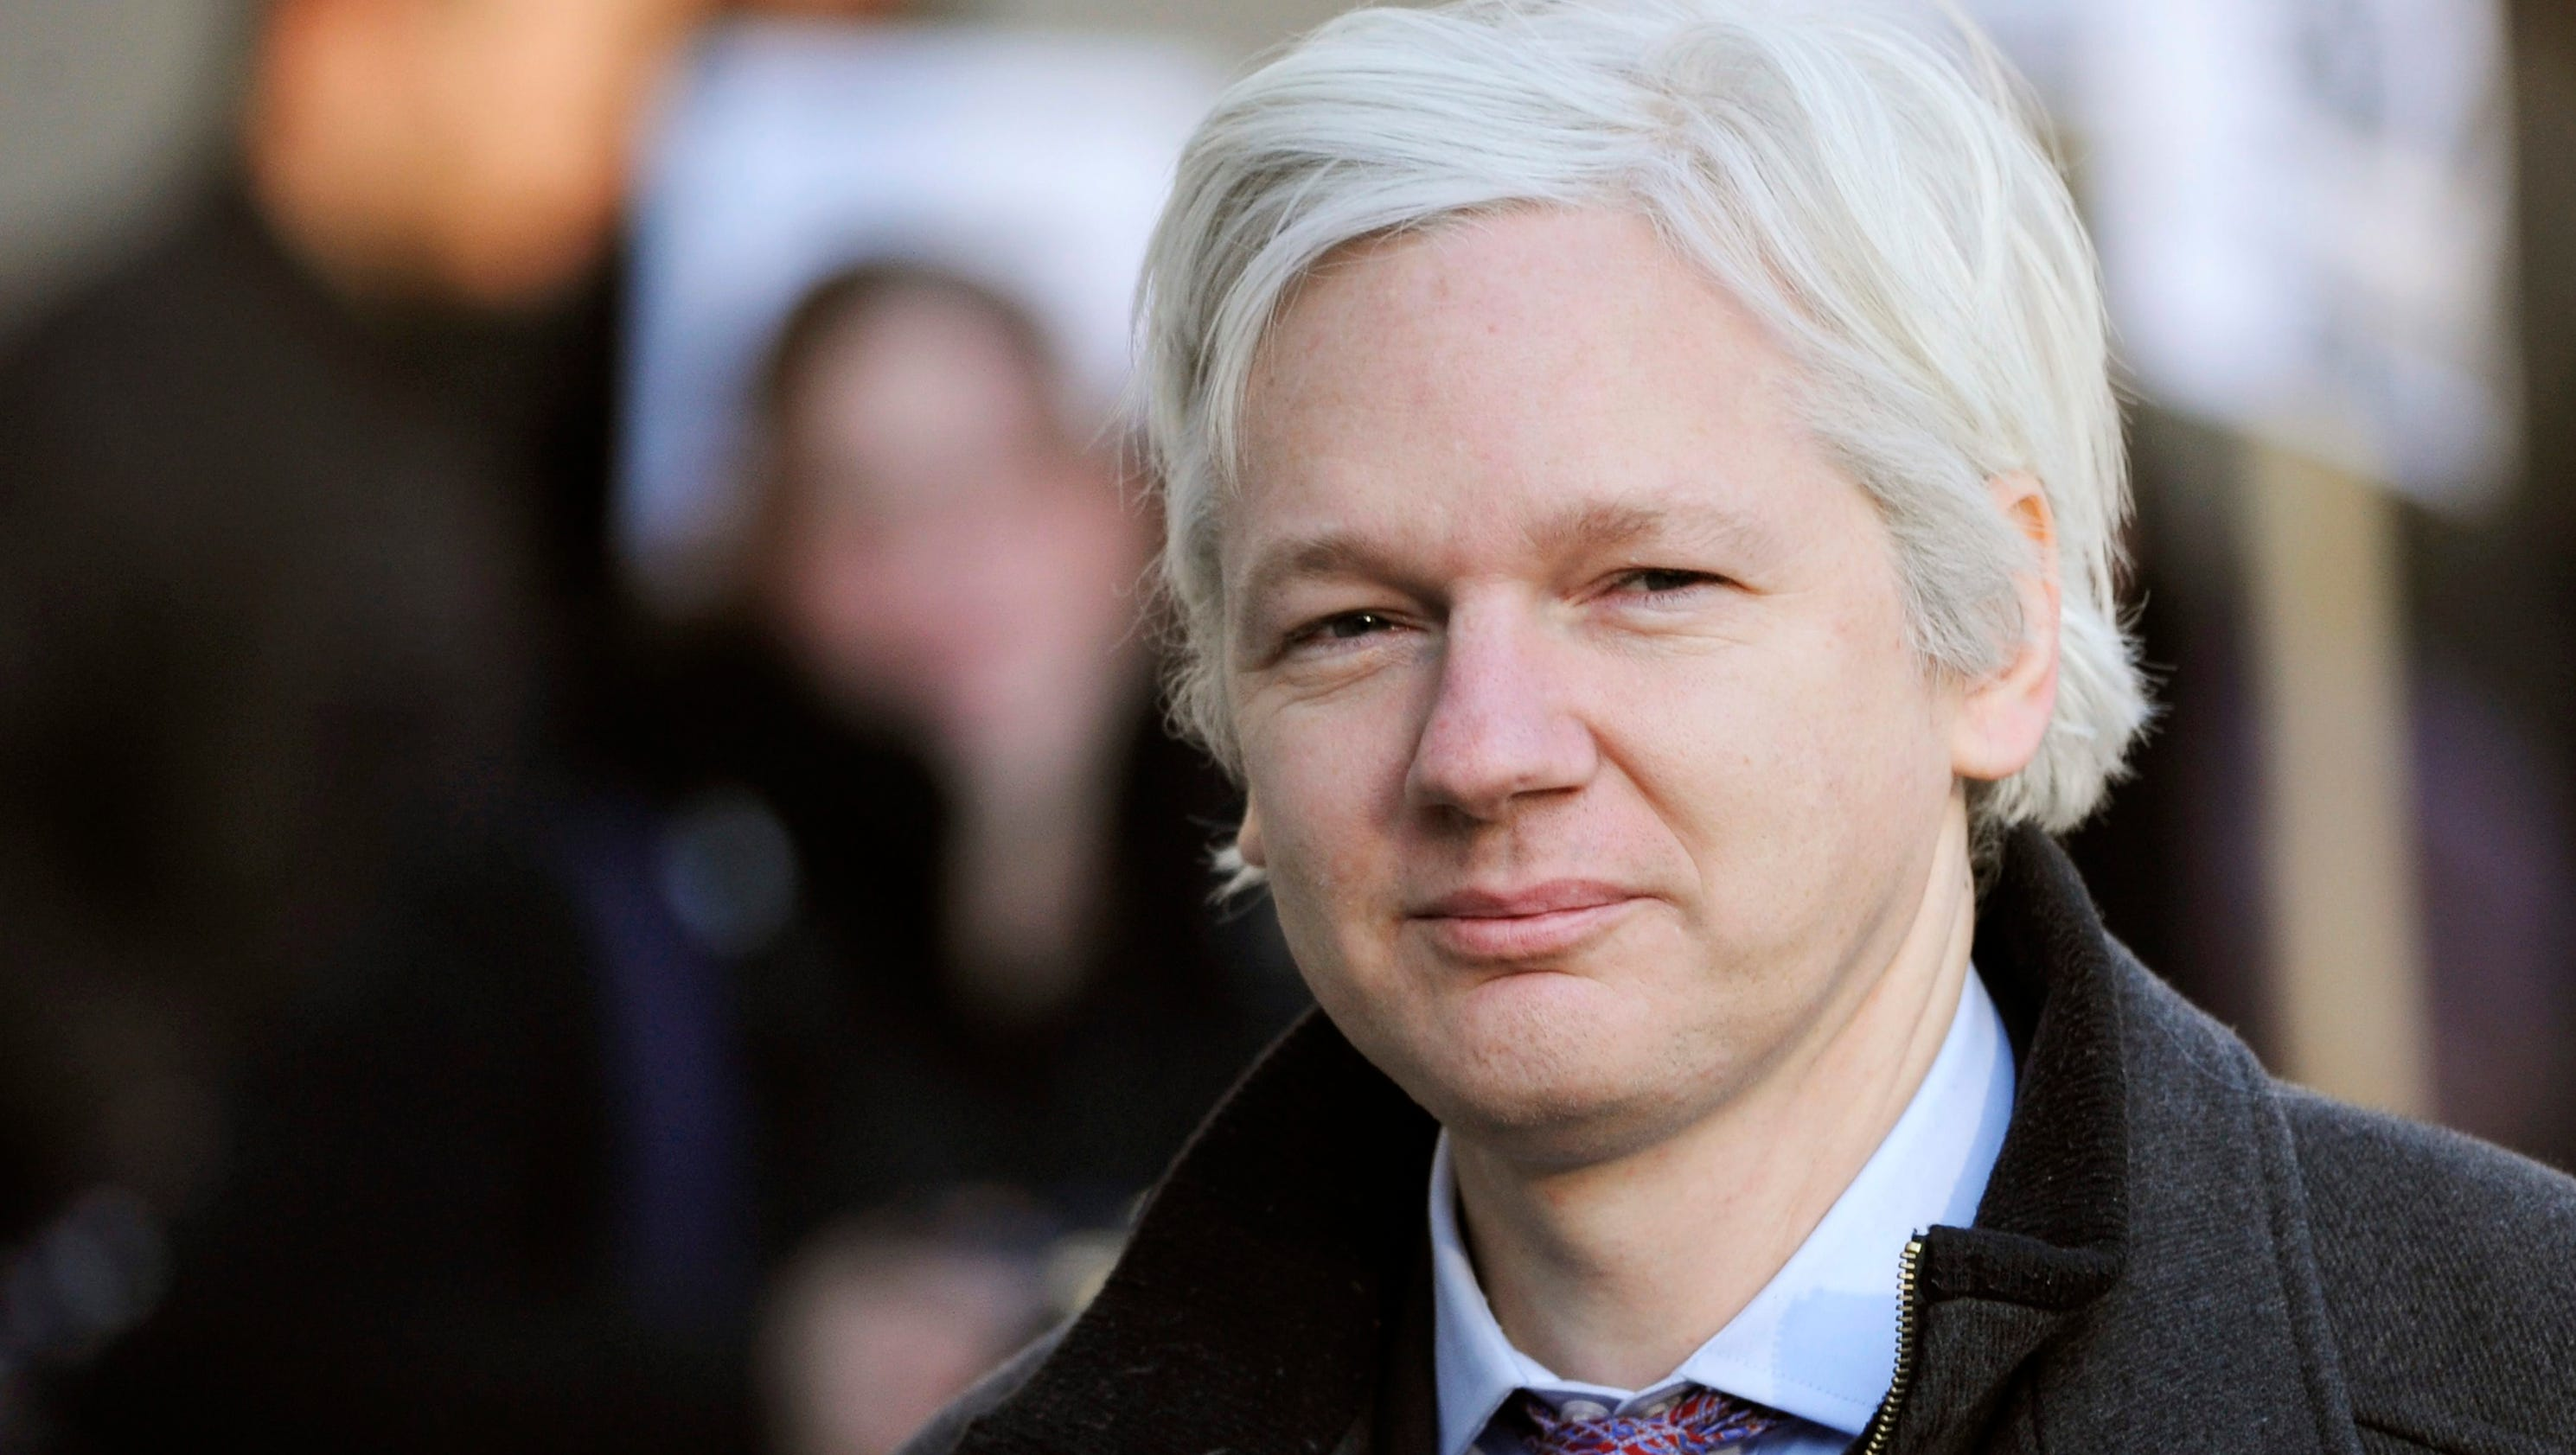 julian assange Computer programmer and activist julian assange caught the world's attention when he released confidential information as wikileaks learn more at biographycom.